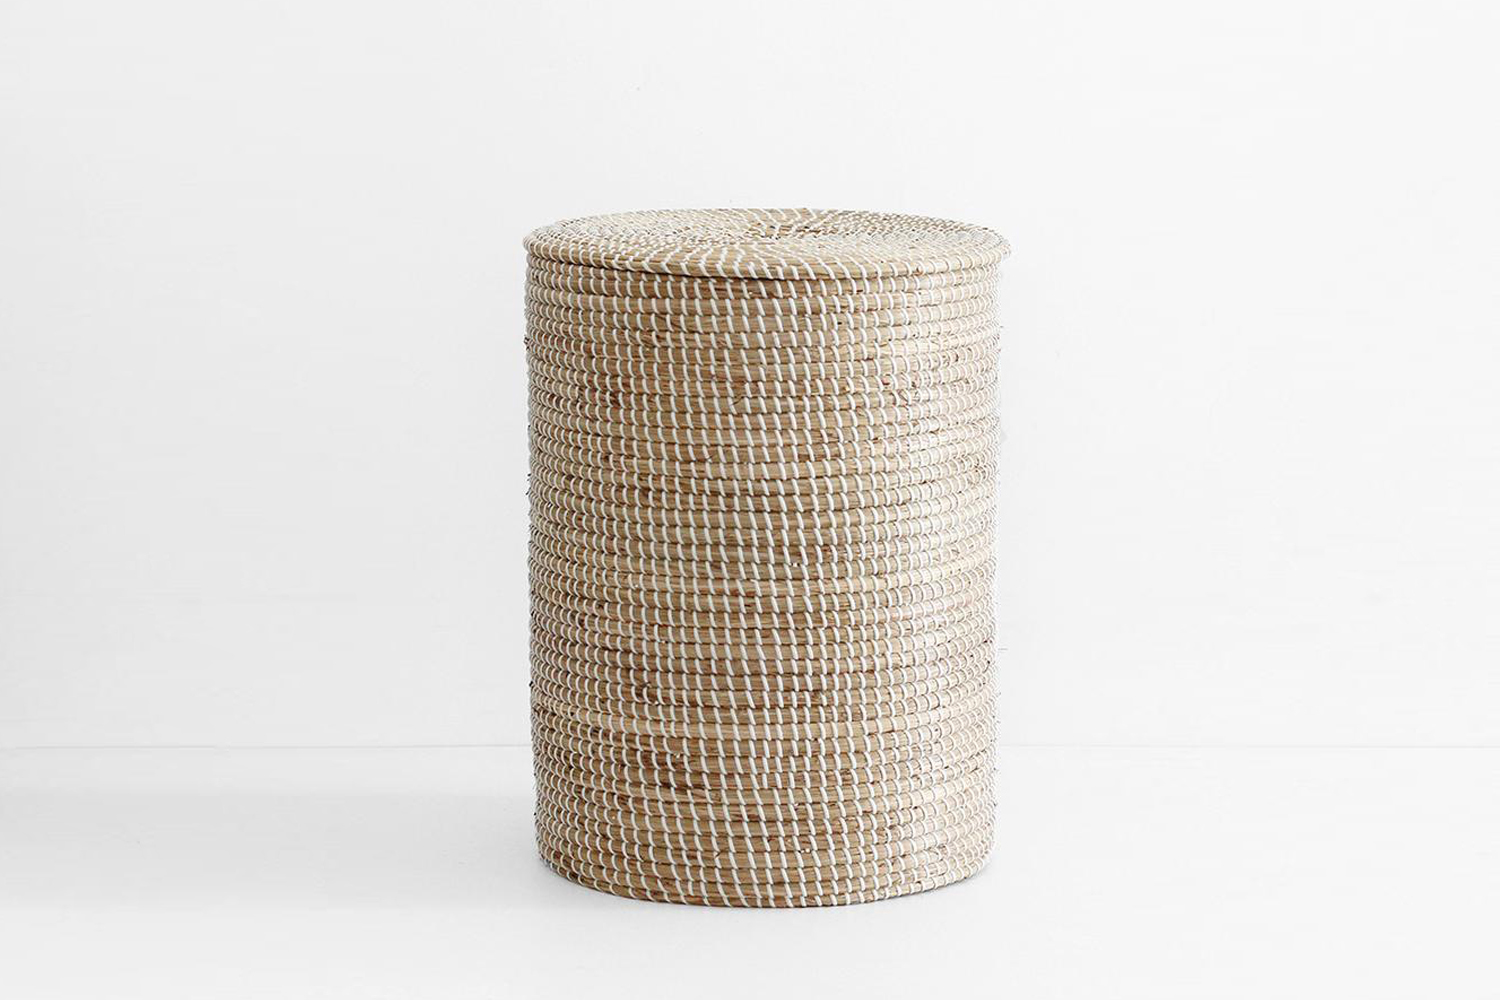 the kori seagrass basket is $239.99 nzd at a&c homestore in new zealand. 13